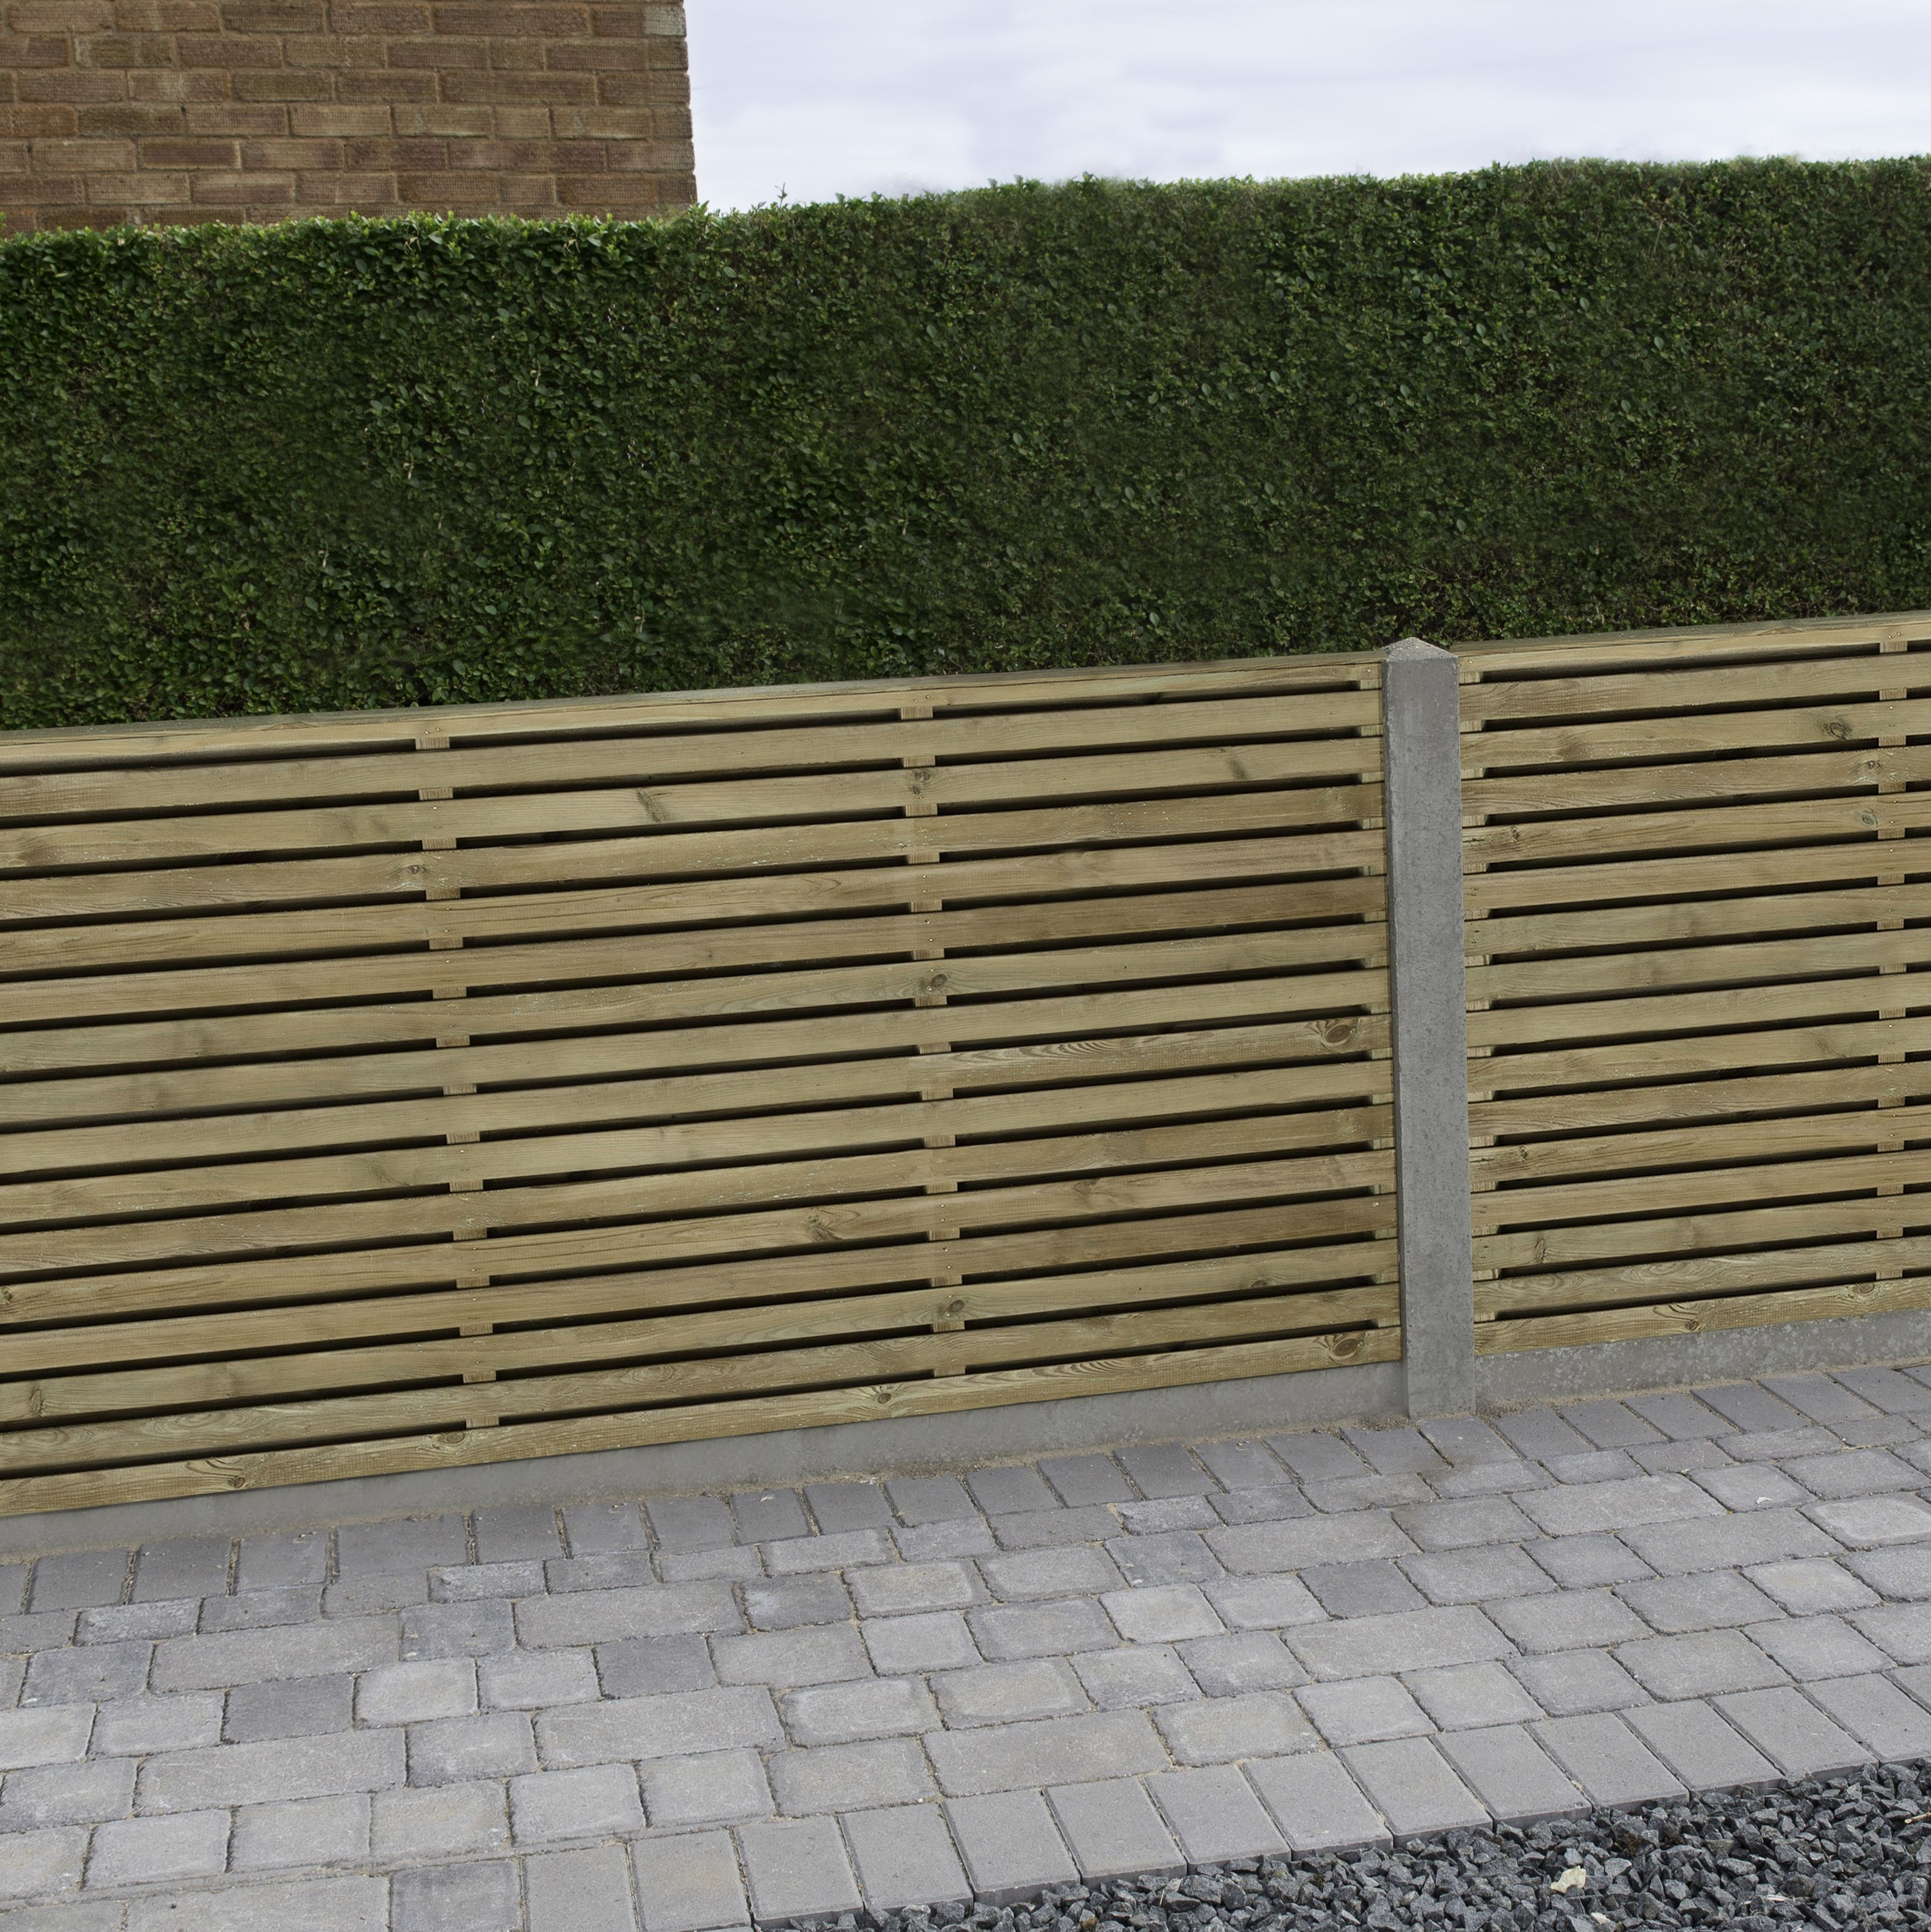 Contemporary Double Slatted Fence Panel W 1 83m H 0 9m Pack Of 4green Slatted Fence Panels Fence Panels Gravel Patio Diy